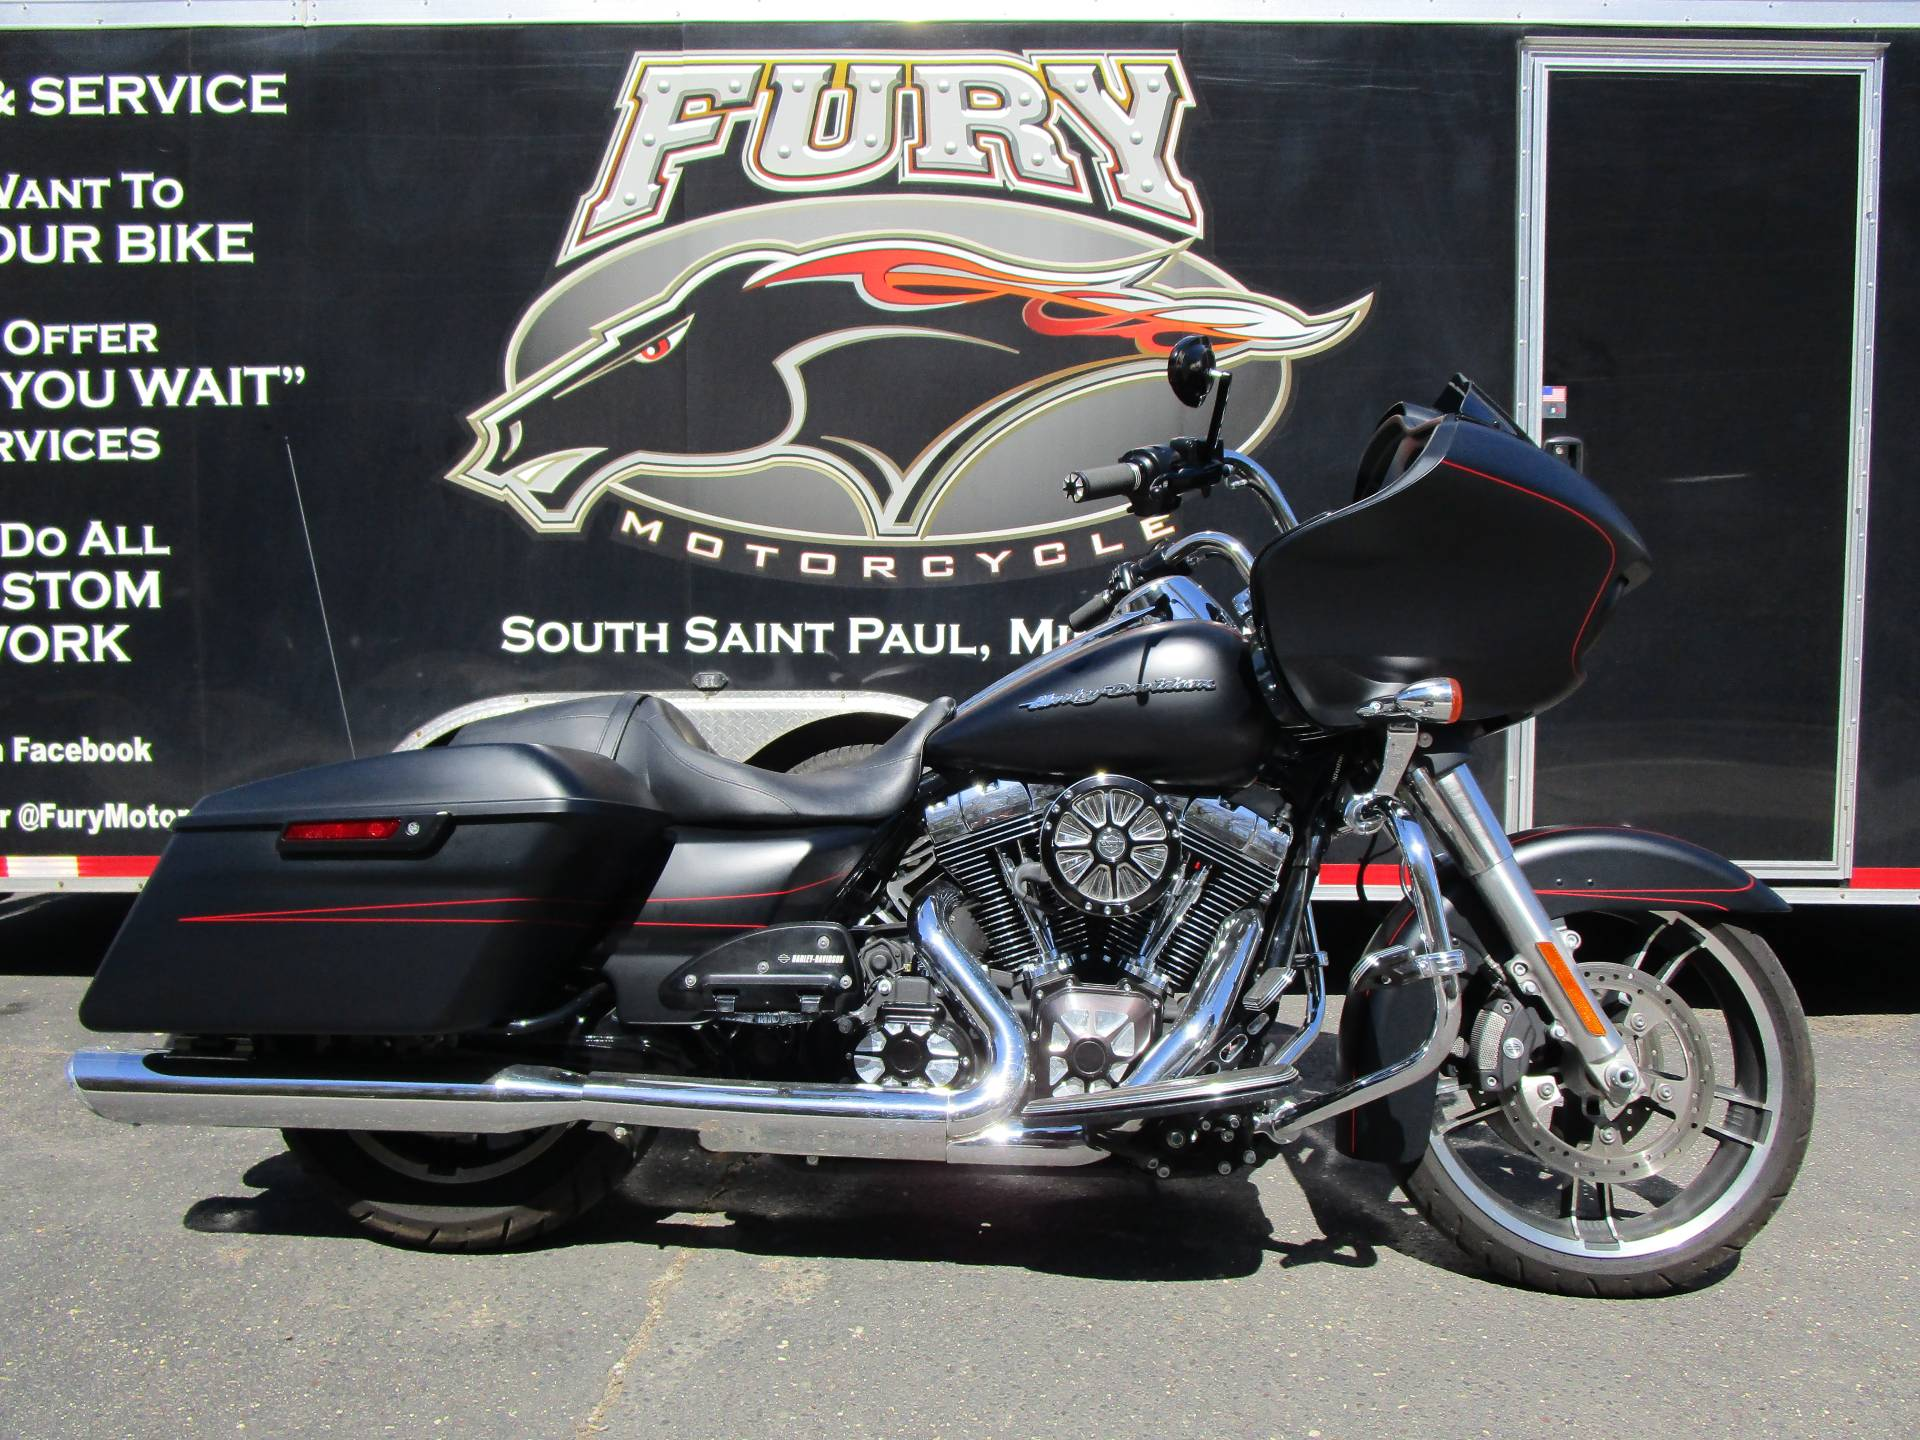 2015 Harley-Davidson FLTRXS ROAD GLIDE SPECIAL in South Saint Paul, Minnesota - Photo 1